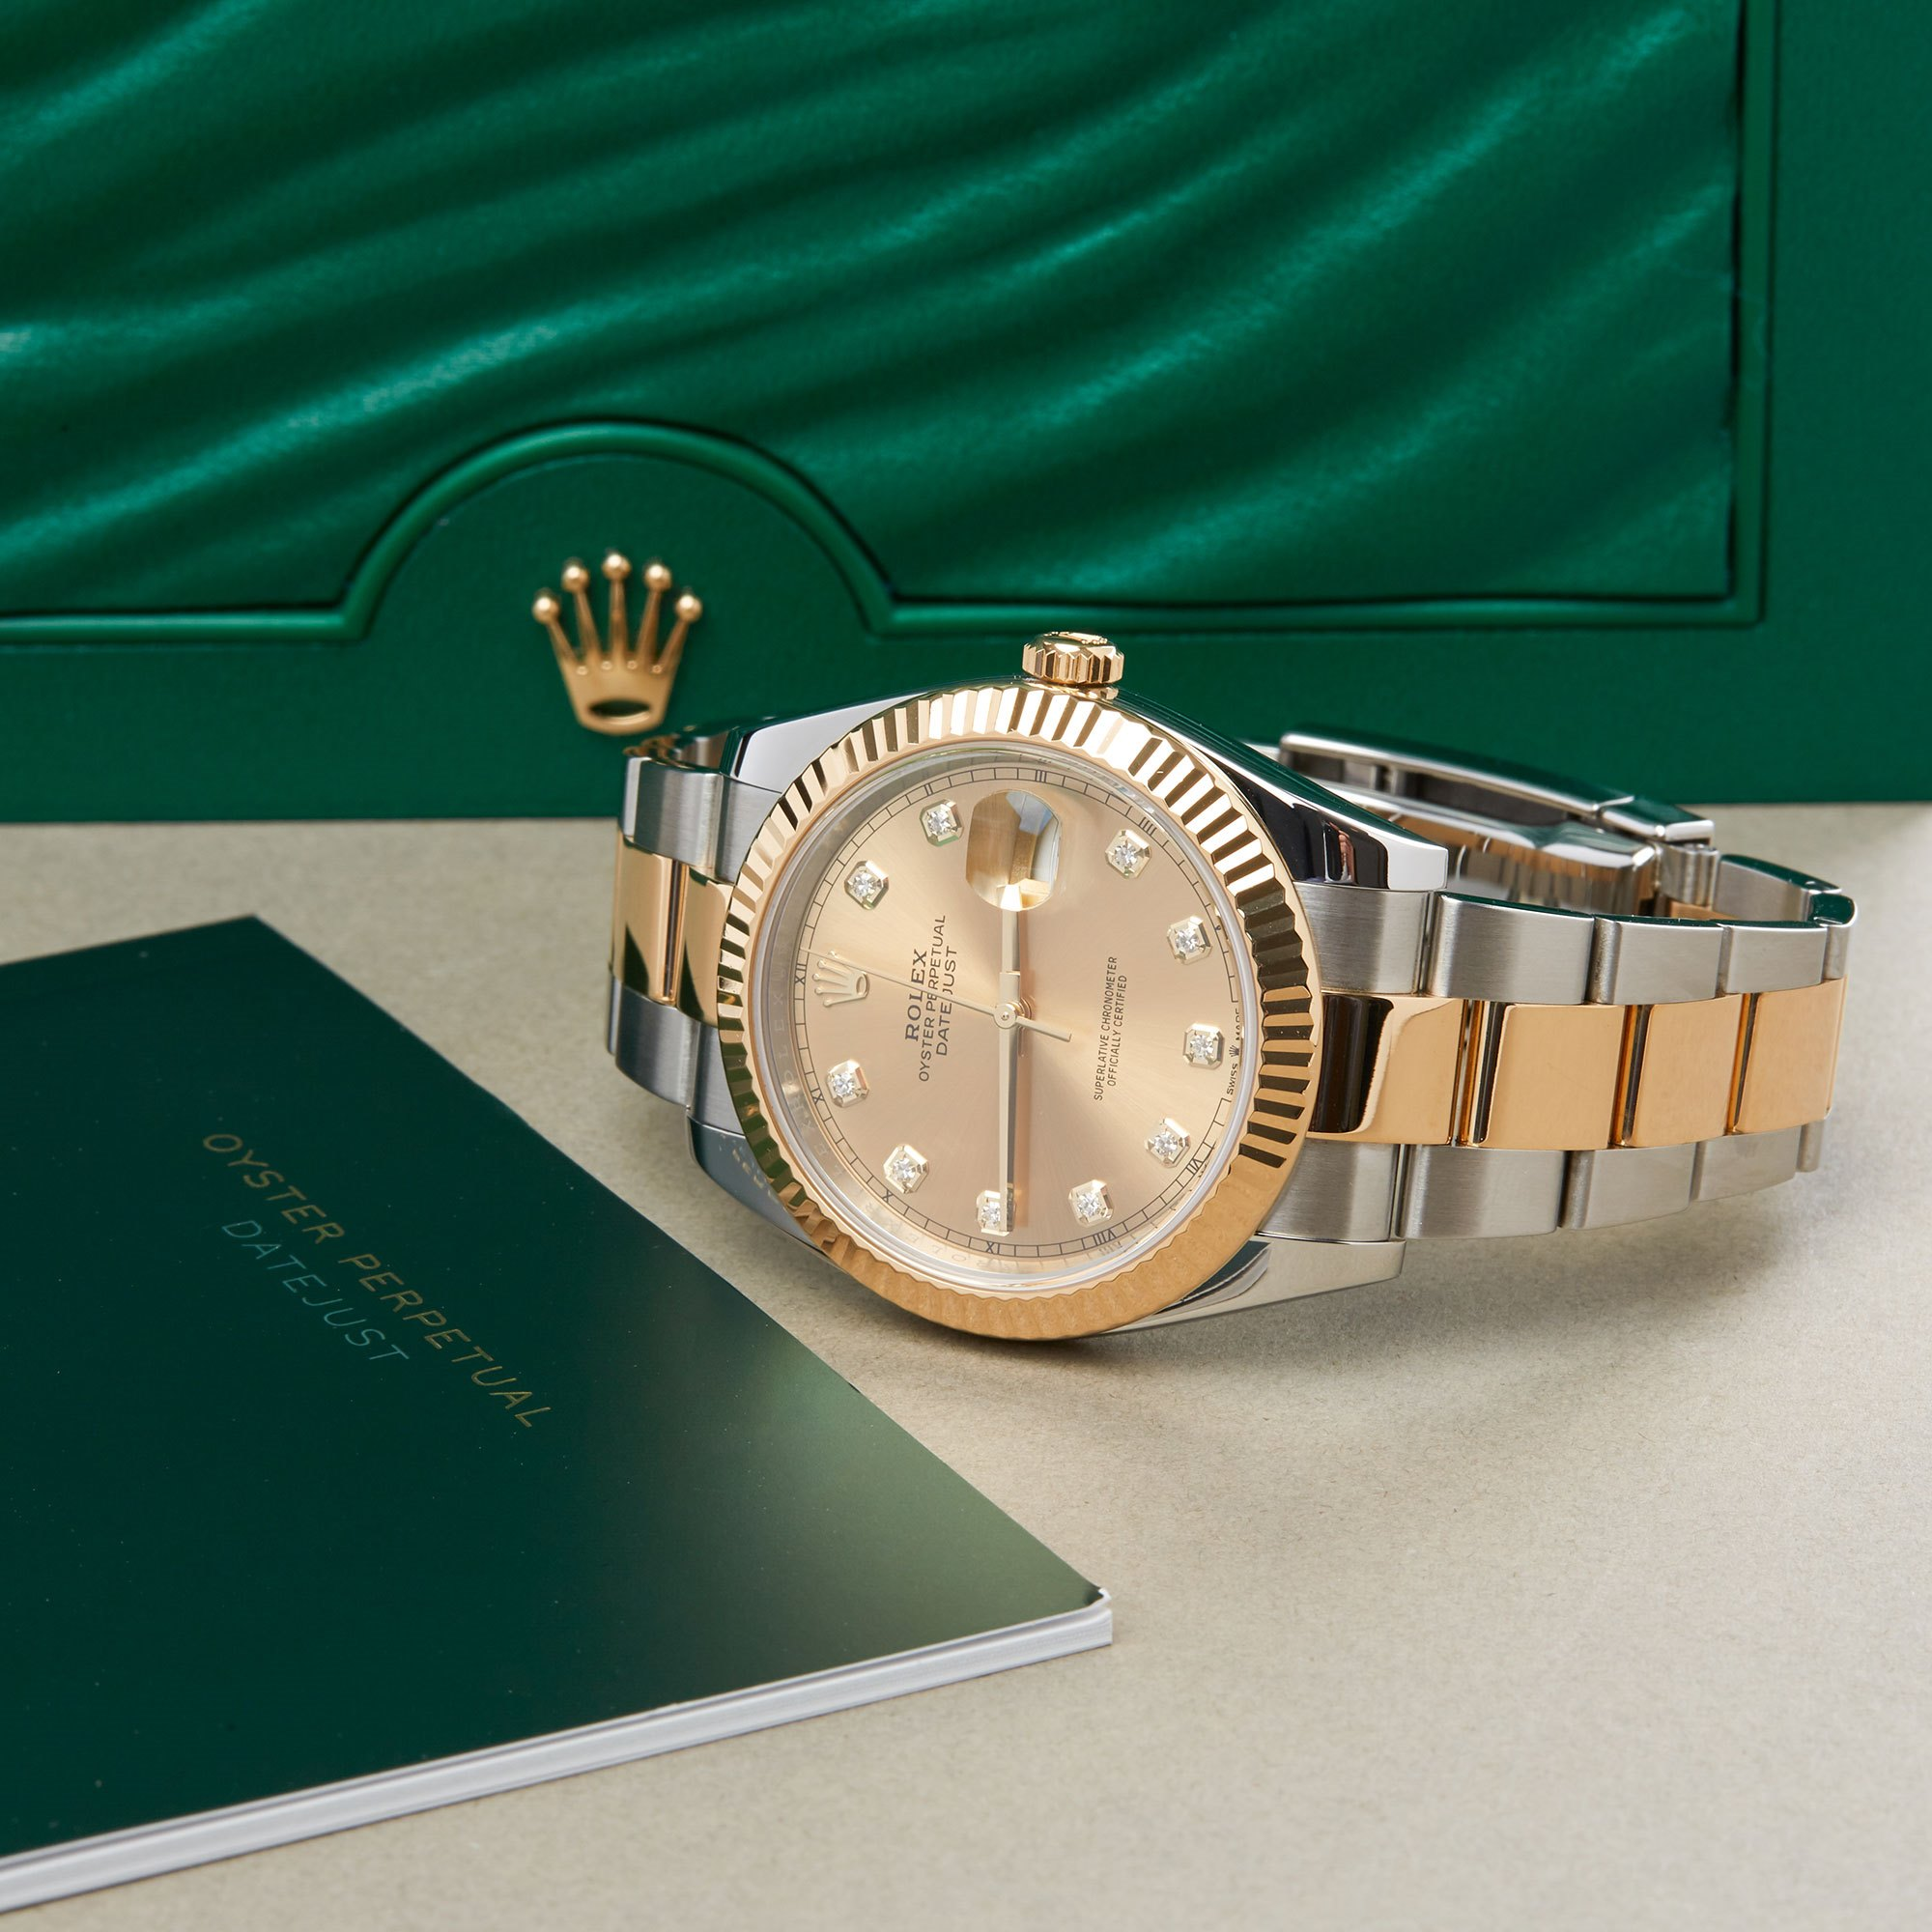 Rolex Datejust 41 126333 Men Yellow Gold & Stainless Steel Diamond Watch - Image 3 of 10